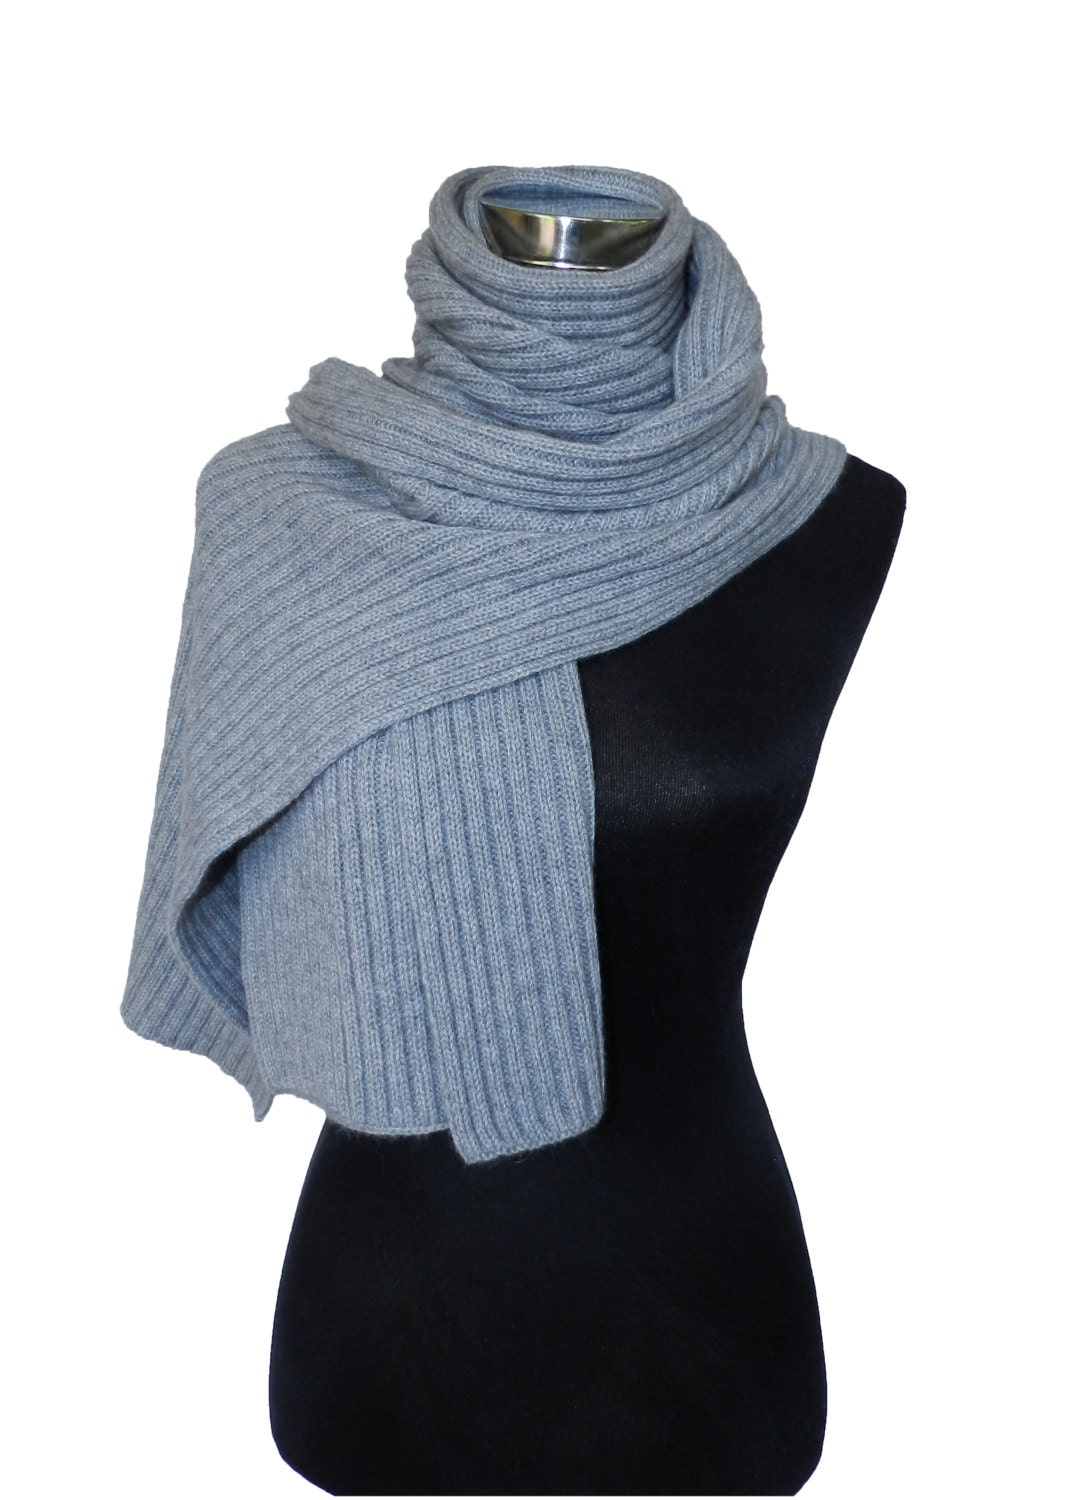 SHOPBOP - Scarves & Wraps FASTEST FREE SHIPPING WORLDWIDE on Scarves & Wraps & FREE EASY RETURNS.